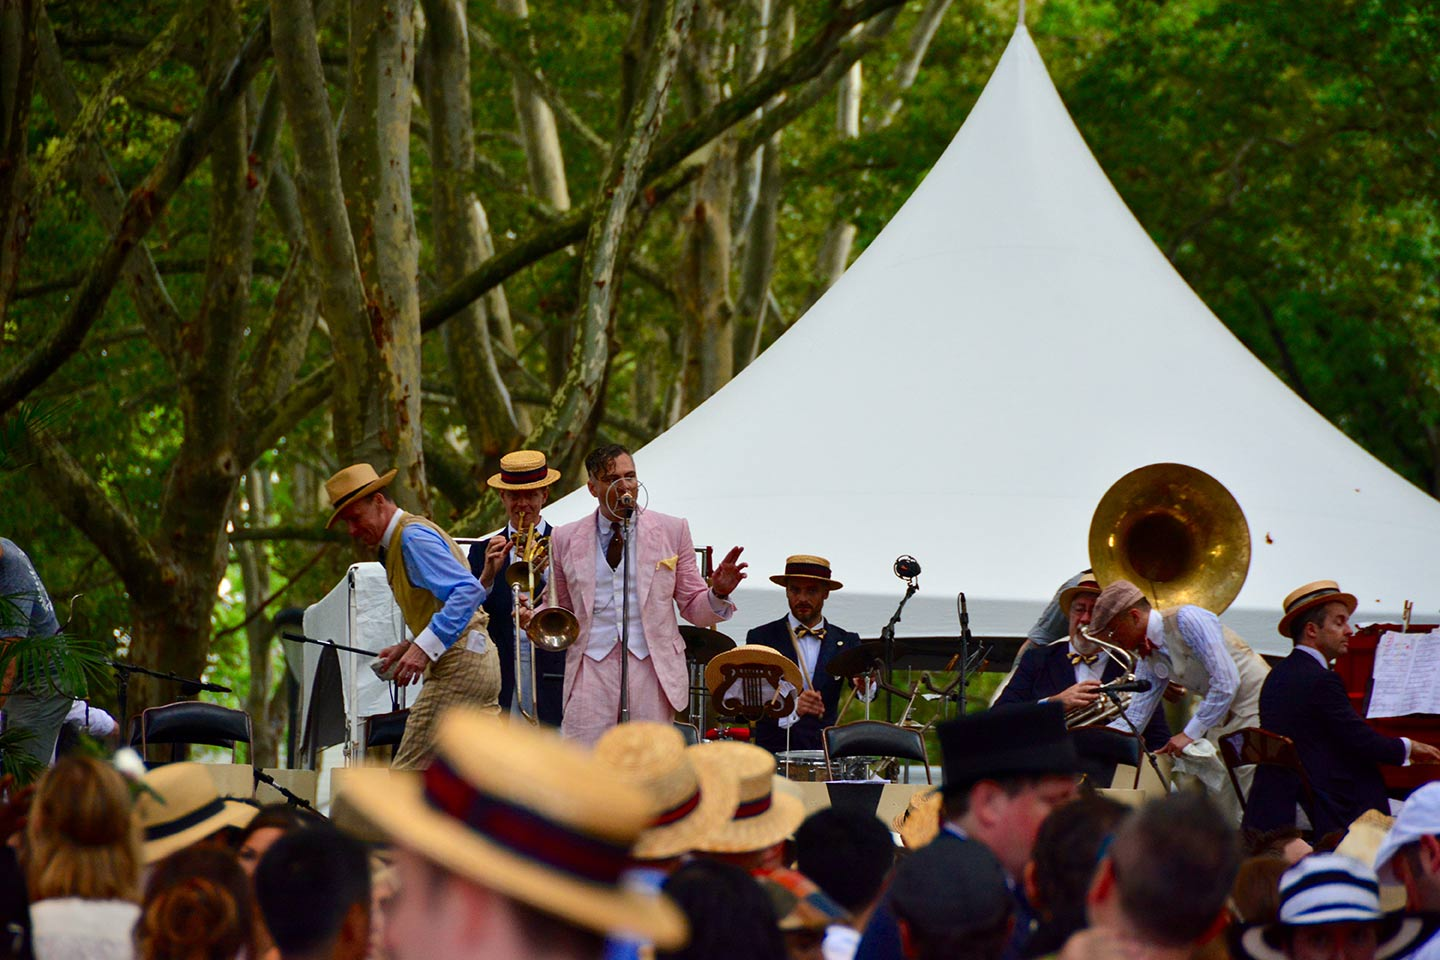 Band playing outdoors at Jazz Age Lawn Party